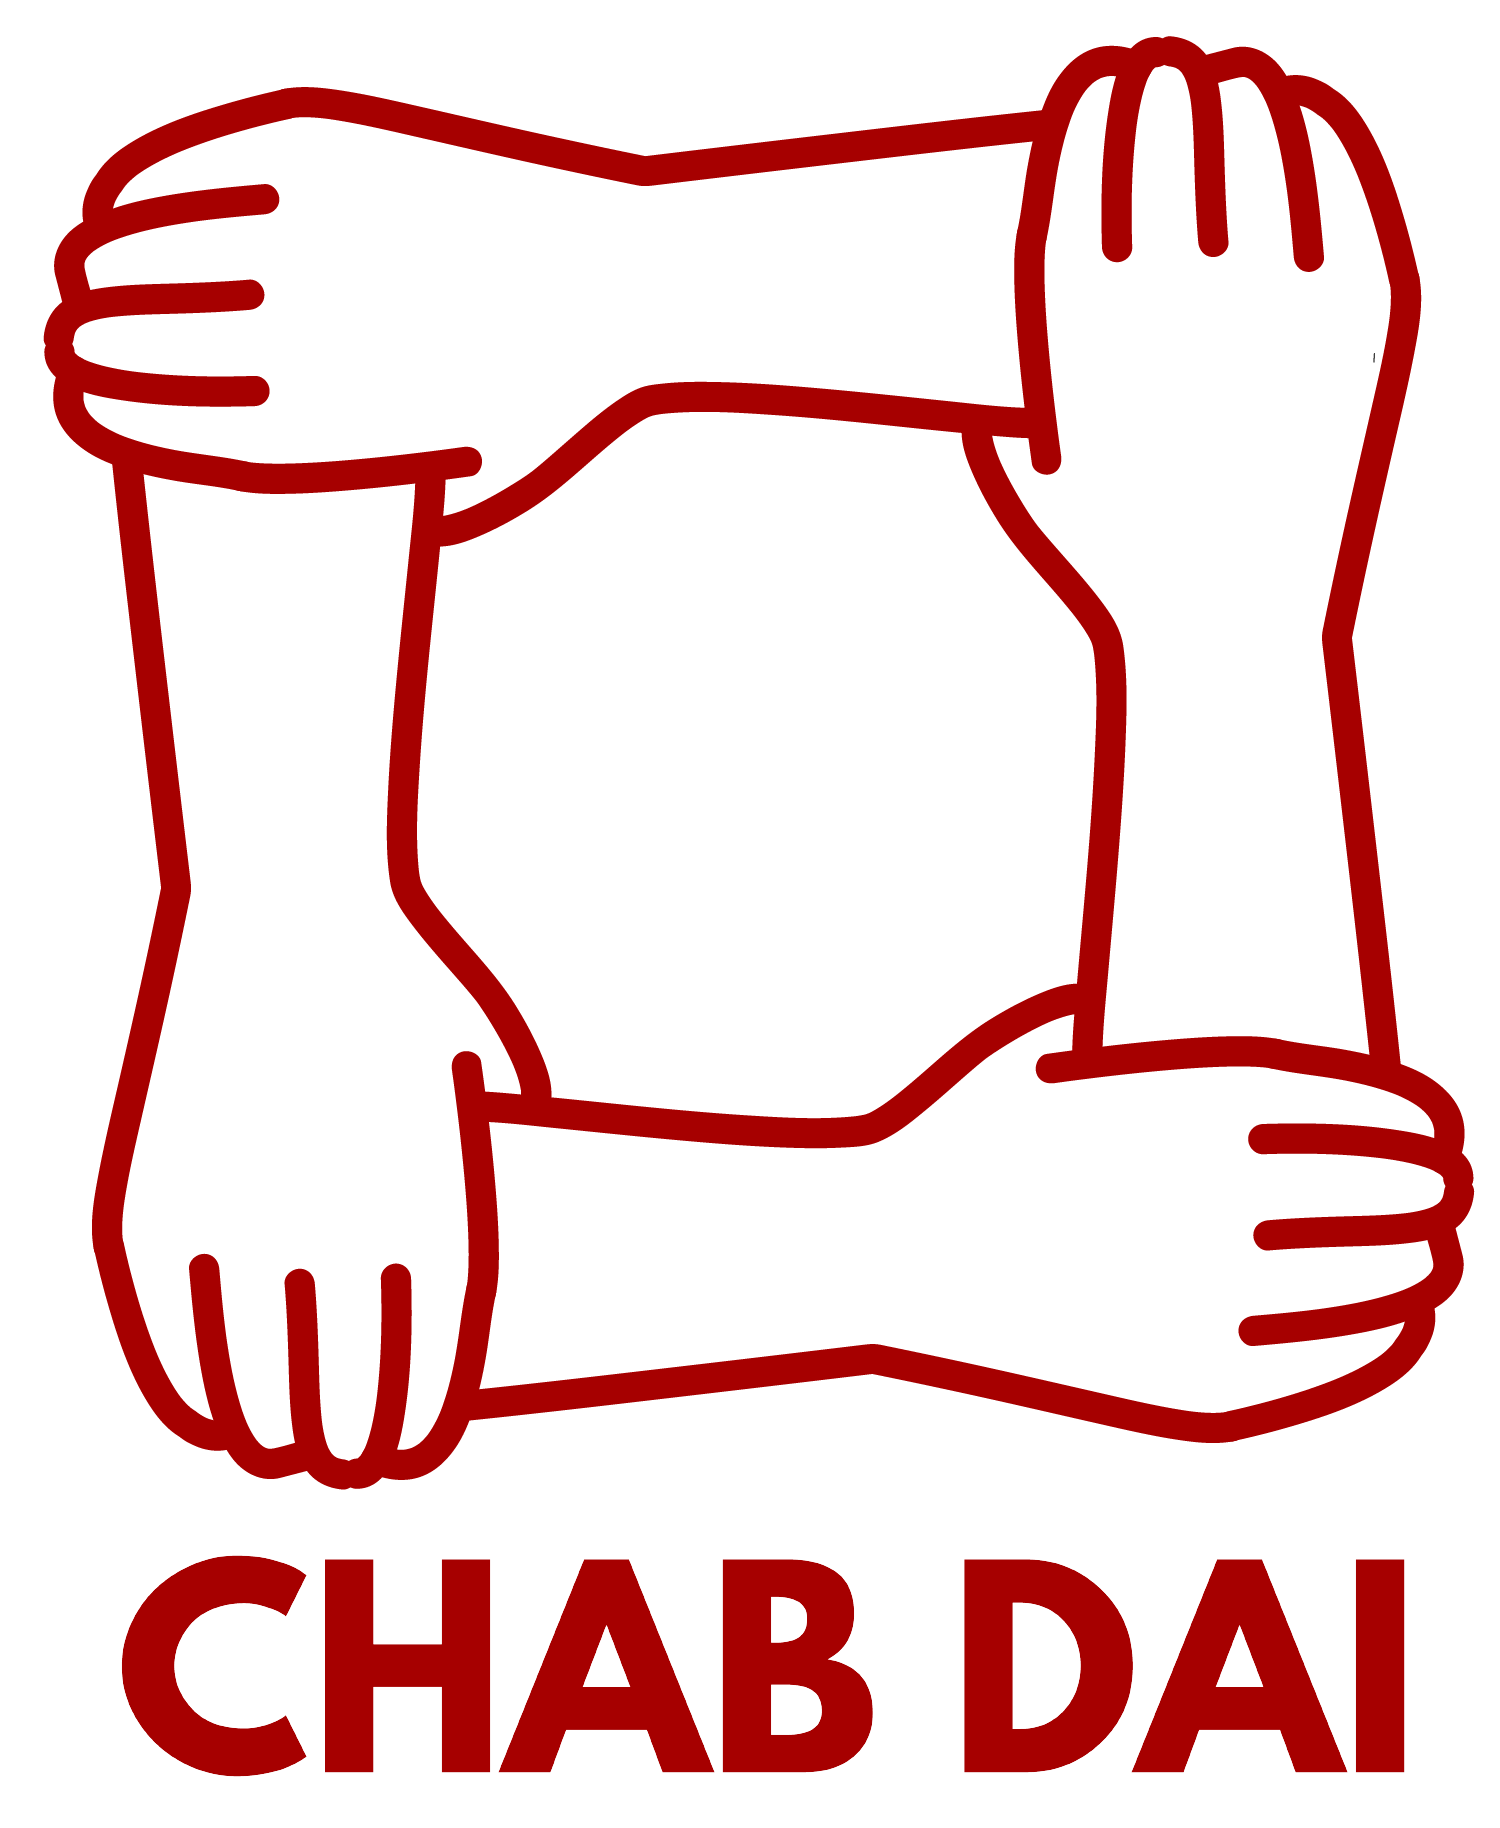 002_CHABDAI_LOGO_COLOURED.png